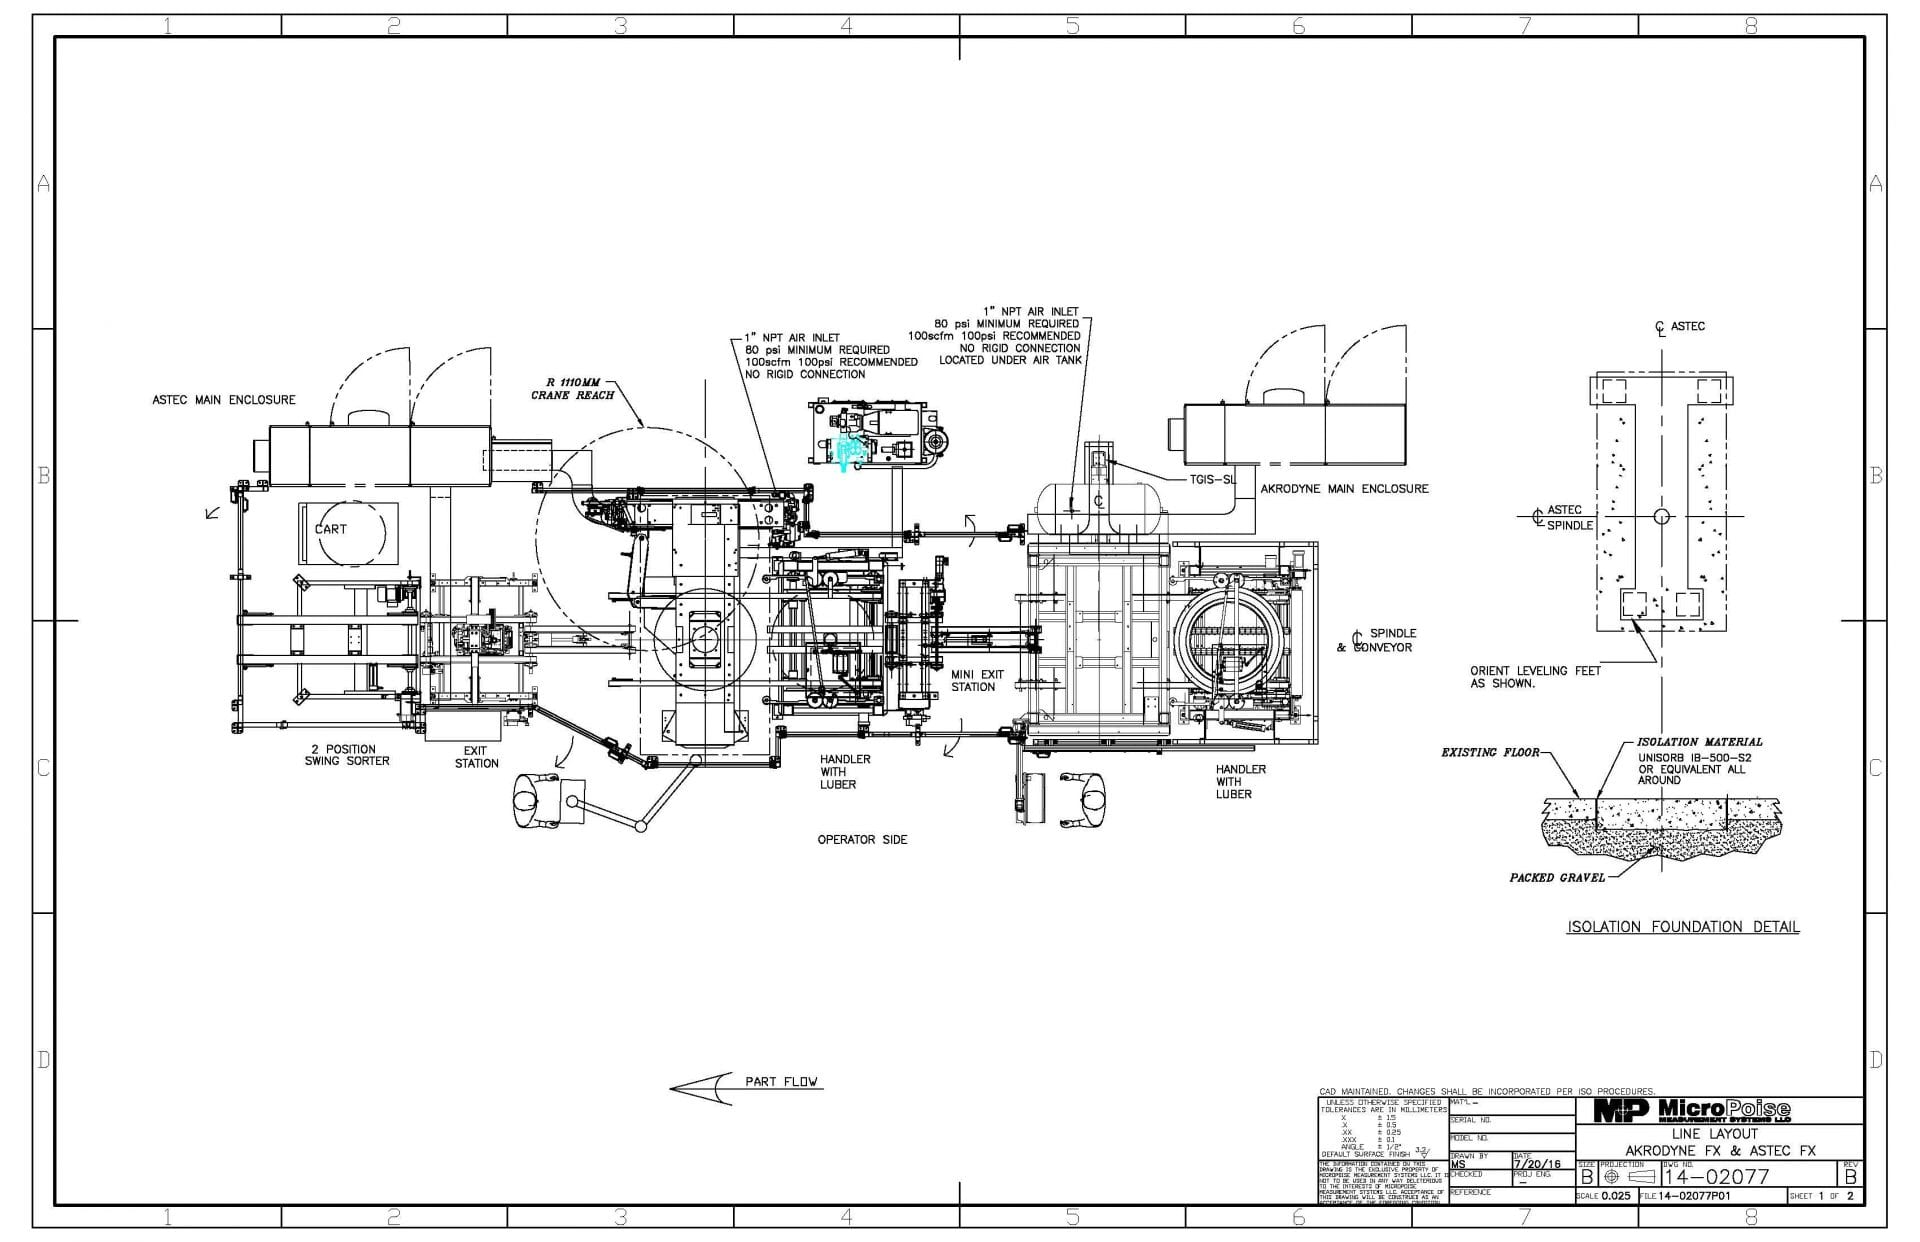 2000 Acura 3 5 Rl Engine Diagram. Acura. Auto Wiring Diagram